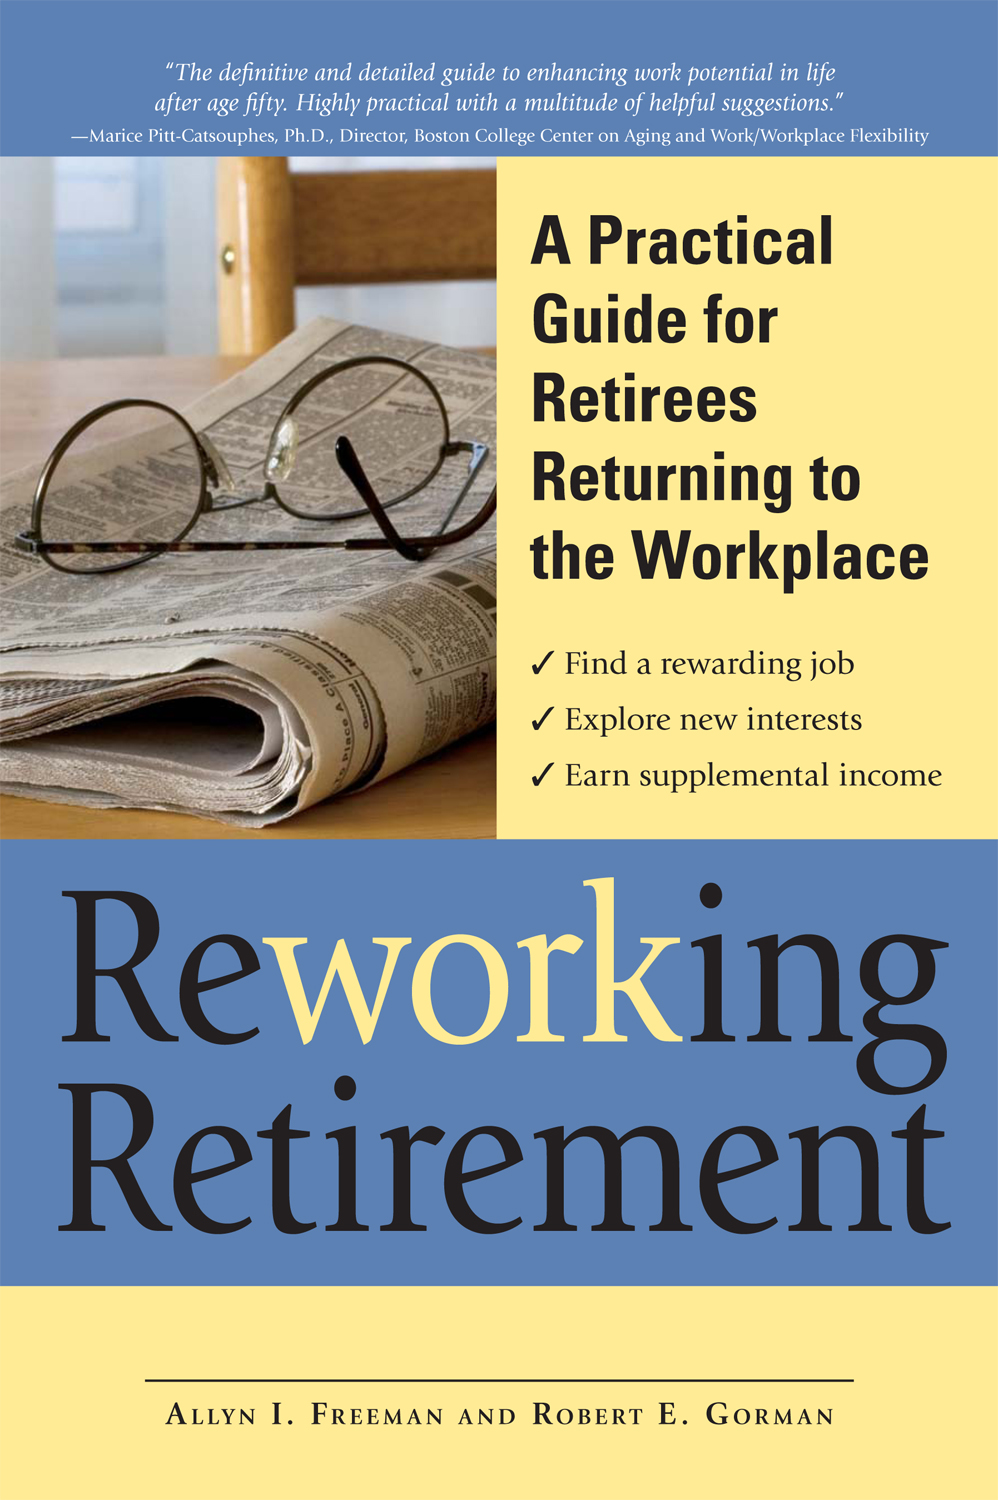 ReWORKing Retirement: A Practical Guide for Seniors Returning to Work